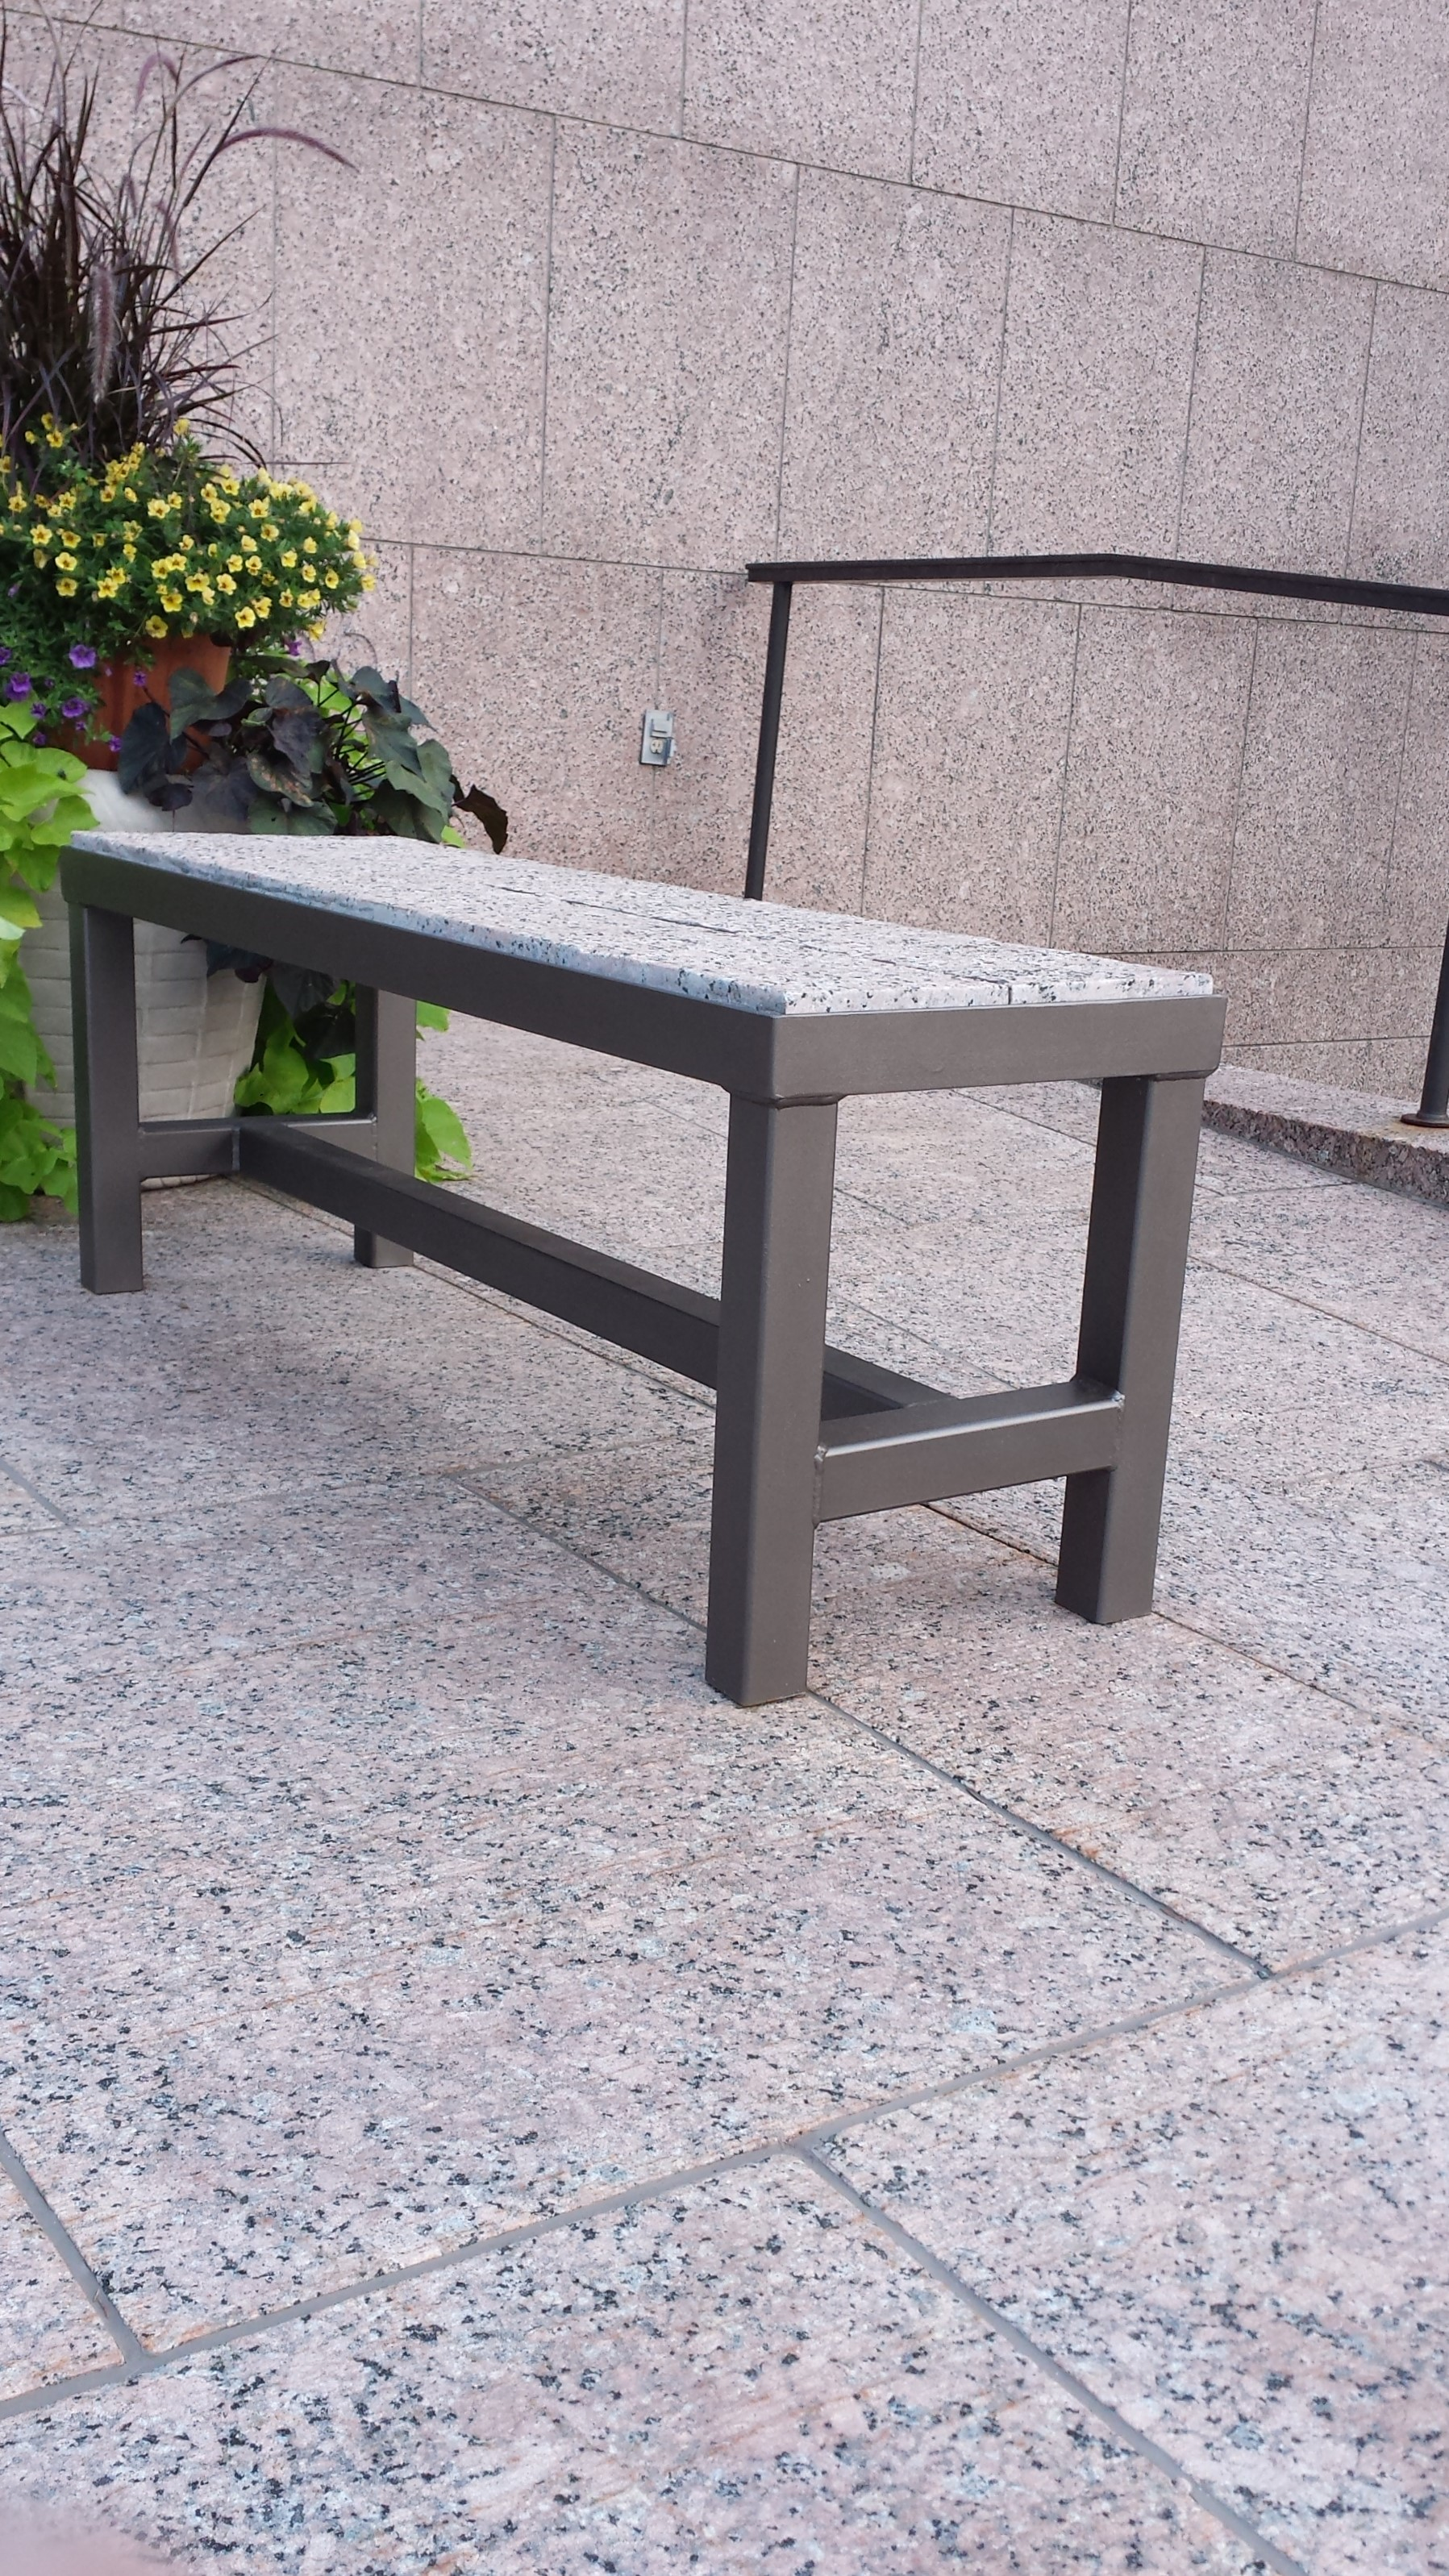 custom-steel-bench-frames-3.jpg